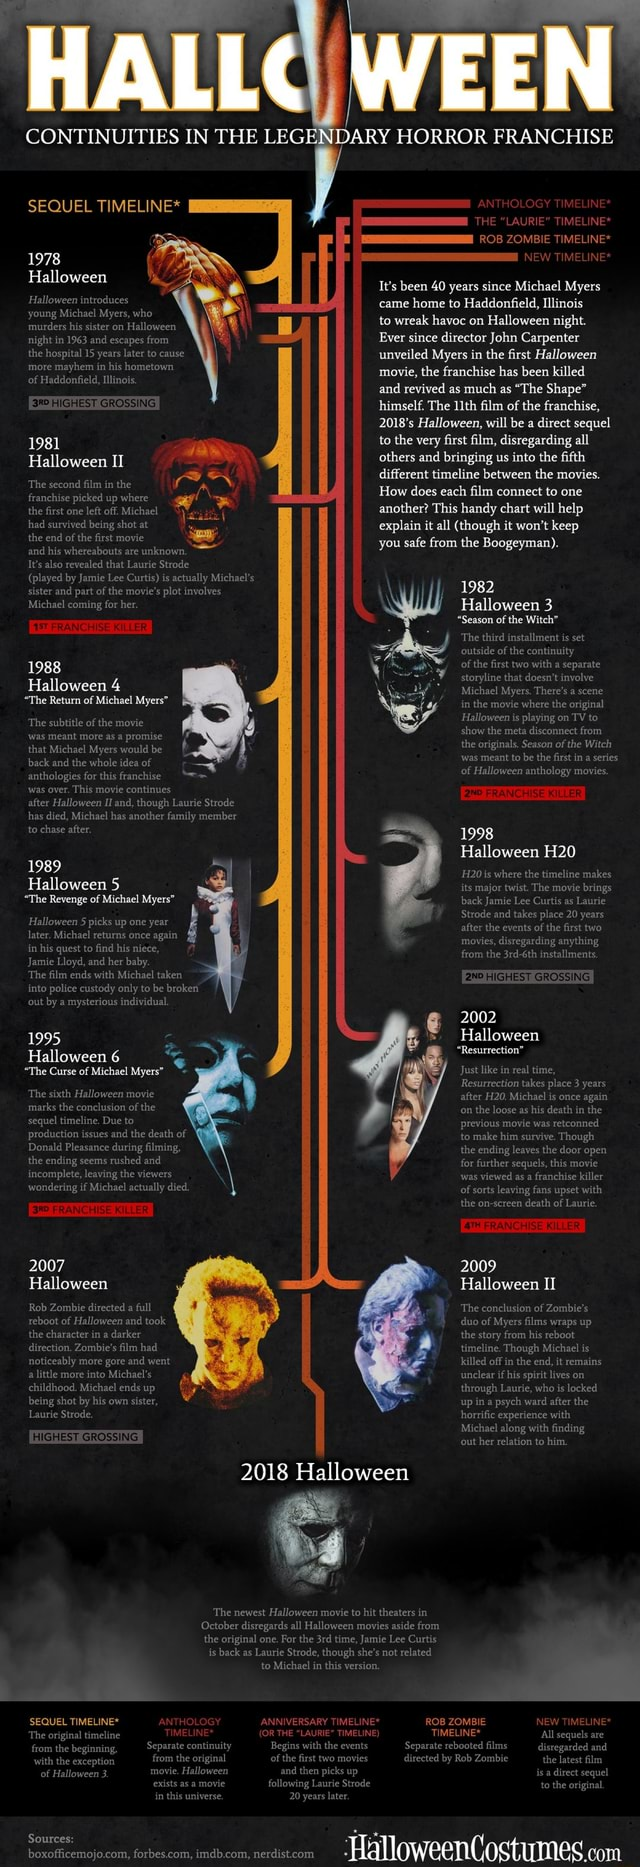 CONTINUITIES SEQUEL TIMELINE* 1978 Halloween Halloween introduces young Michael Myers, who murders his sister on Halloween night in 1963 and escapes from the hospital 15 years later to cause more mayhem in his hometown of Haddonfield, Illinois. HIGHEST GROSSING 1981 Halloween II The second film in the franchise picked up where the first one left off. Michael had survived being shot at the end of the first movie and his whereabouts are unknown. It's also revealed that Laurie Strode played by Jamie Lee Curtis is act sister and part of the movie's plot involves Michael coming for her ANT ER 1988 Halloween 4 The Return of Michael Myers The subtitle of the movie was meant more as a promise that Michael Myers would be back and the whole idea of anthologies for this franchise was over. This movie